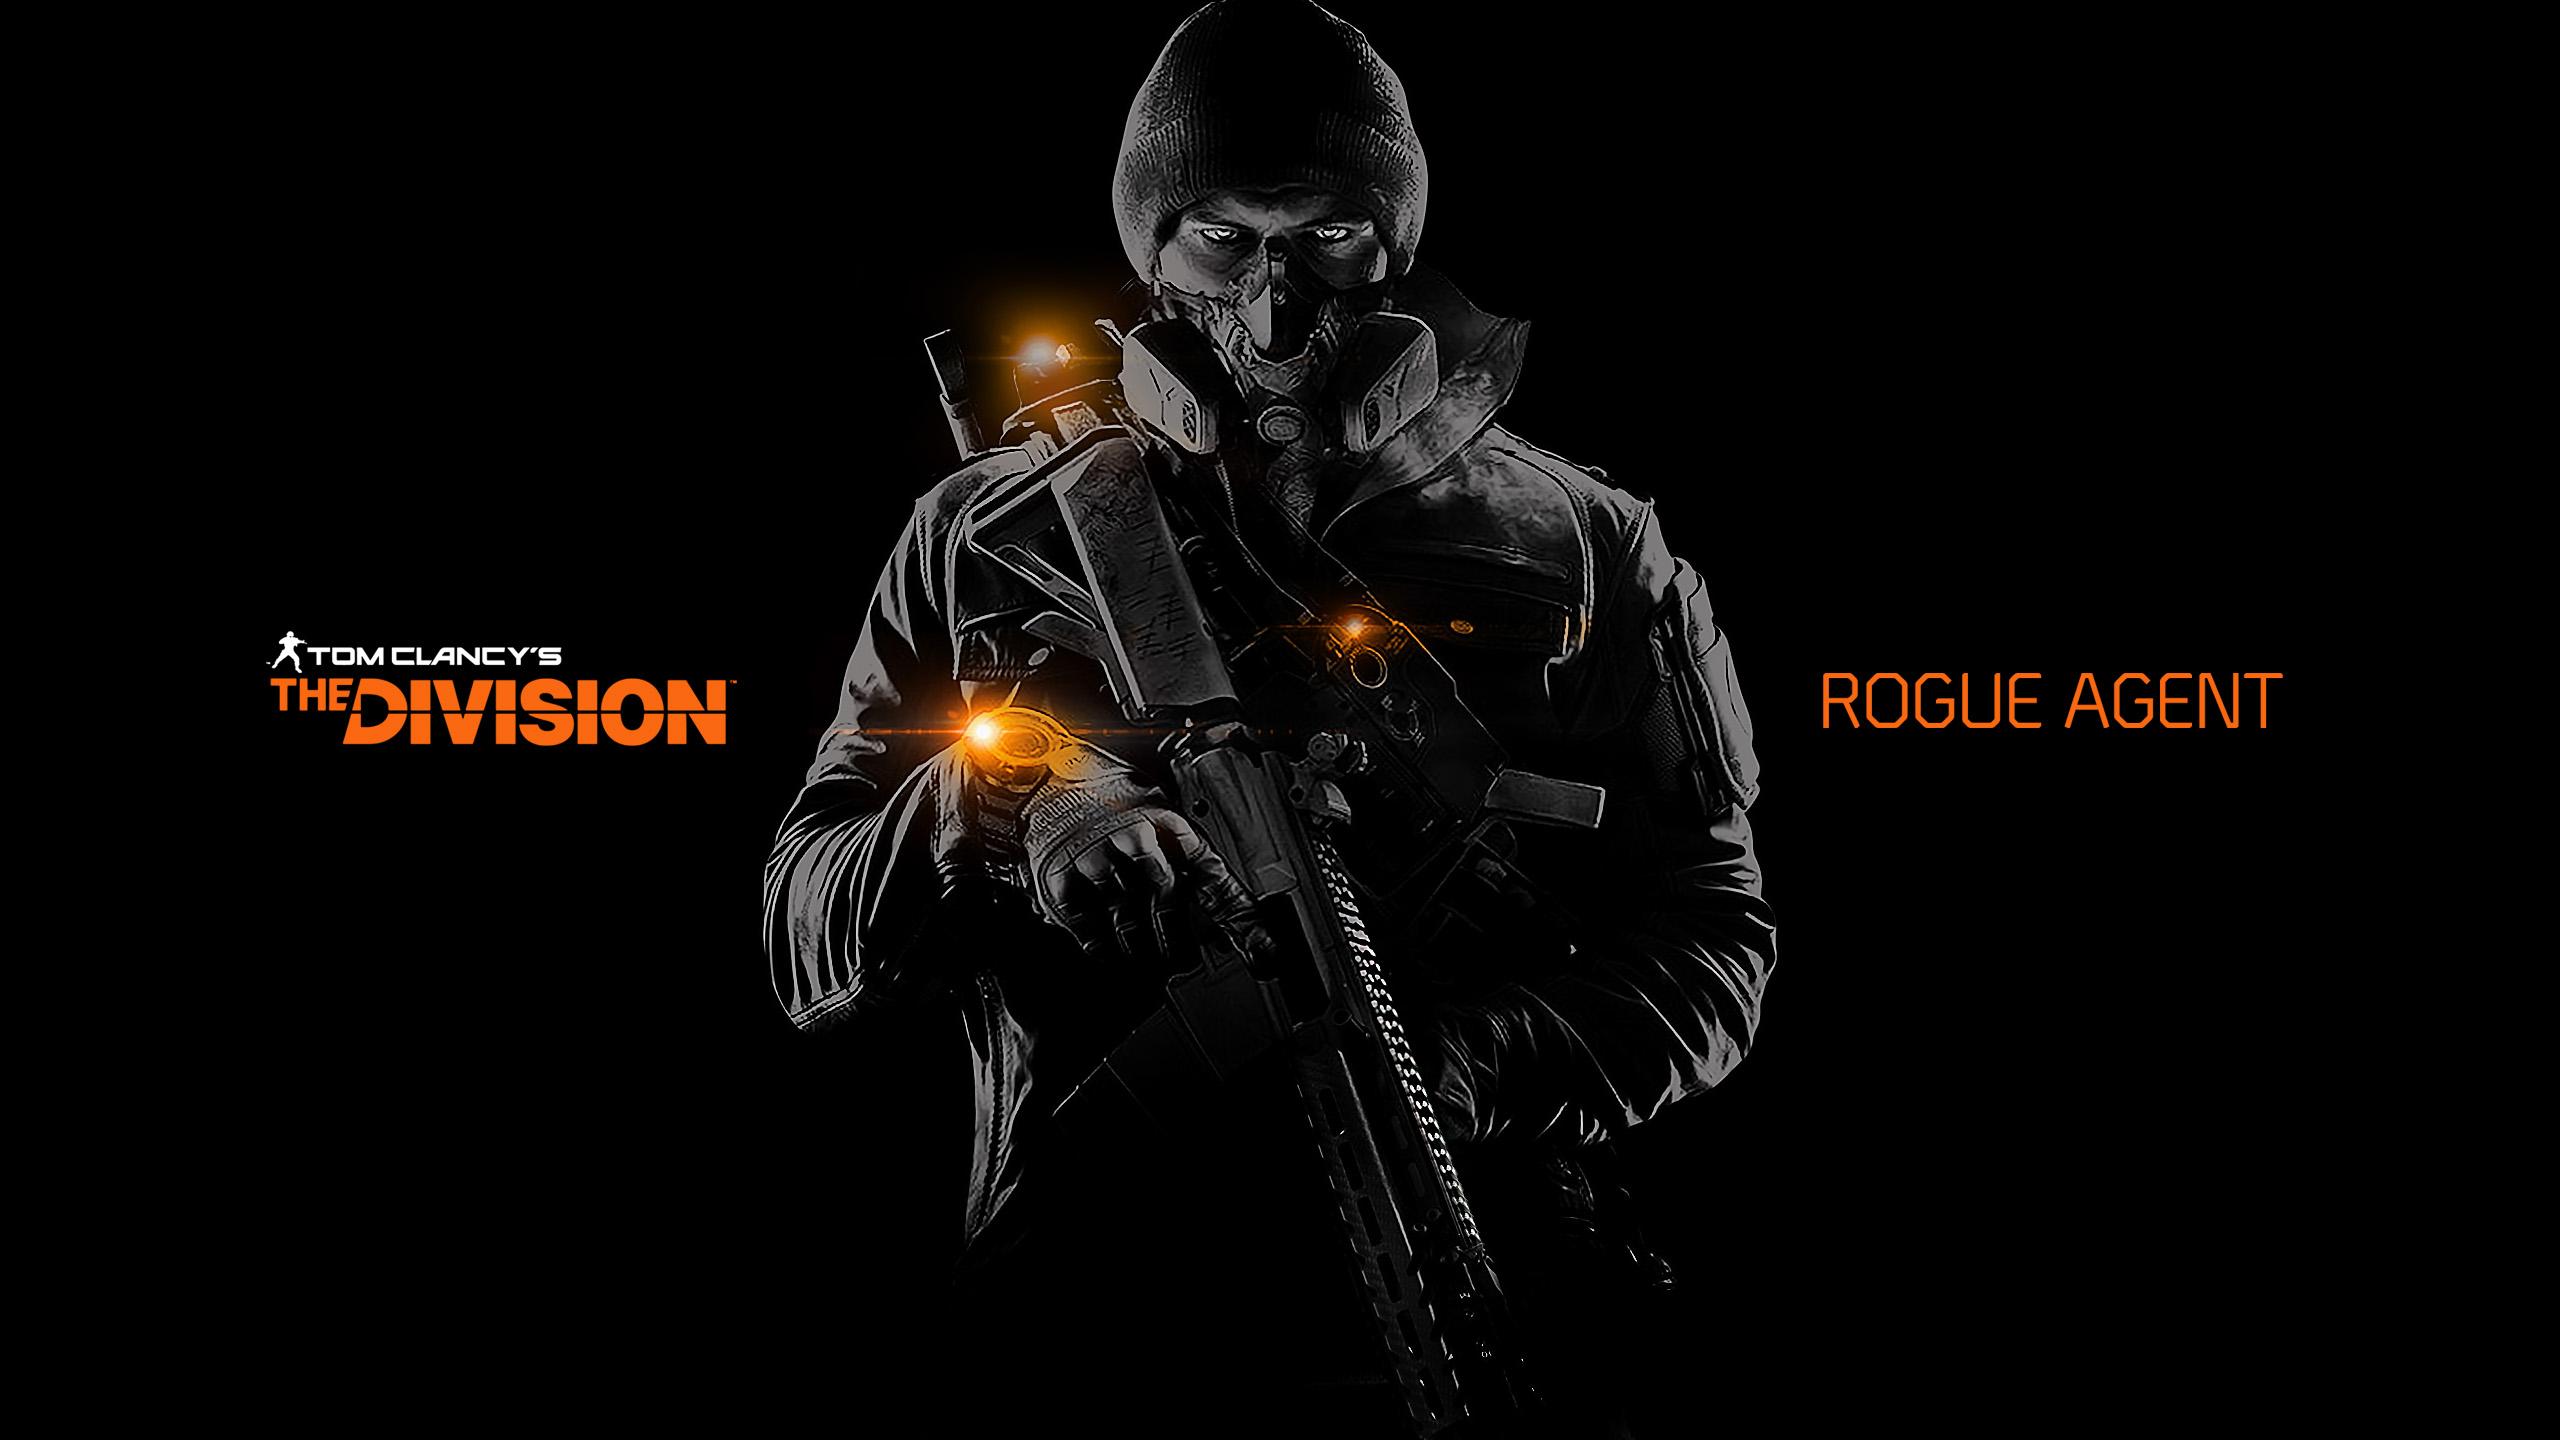 The Division Wallpaper 2 – GamerFuzion